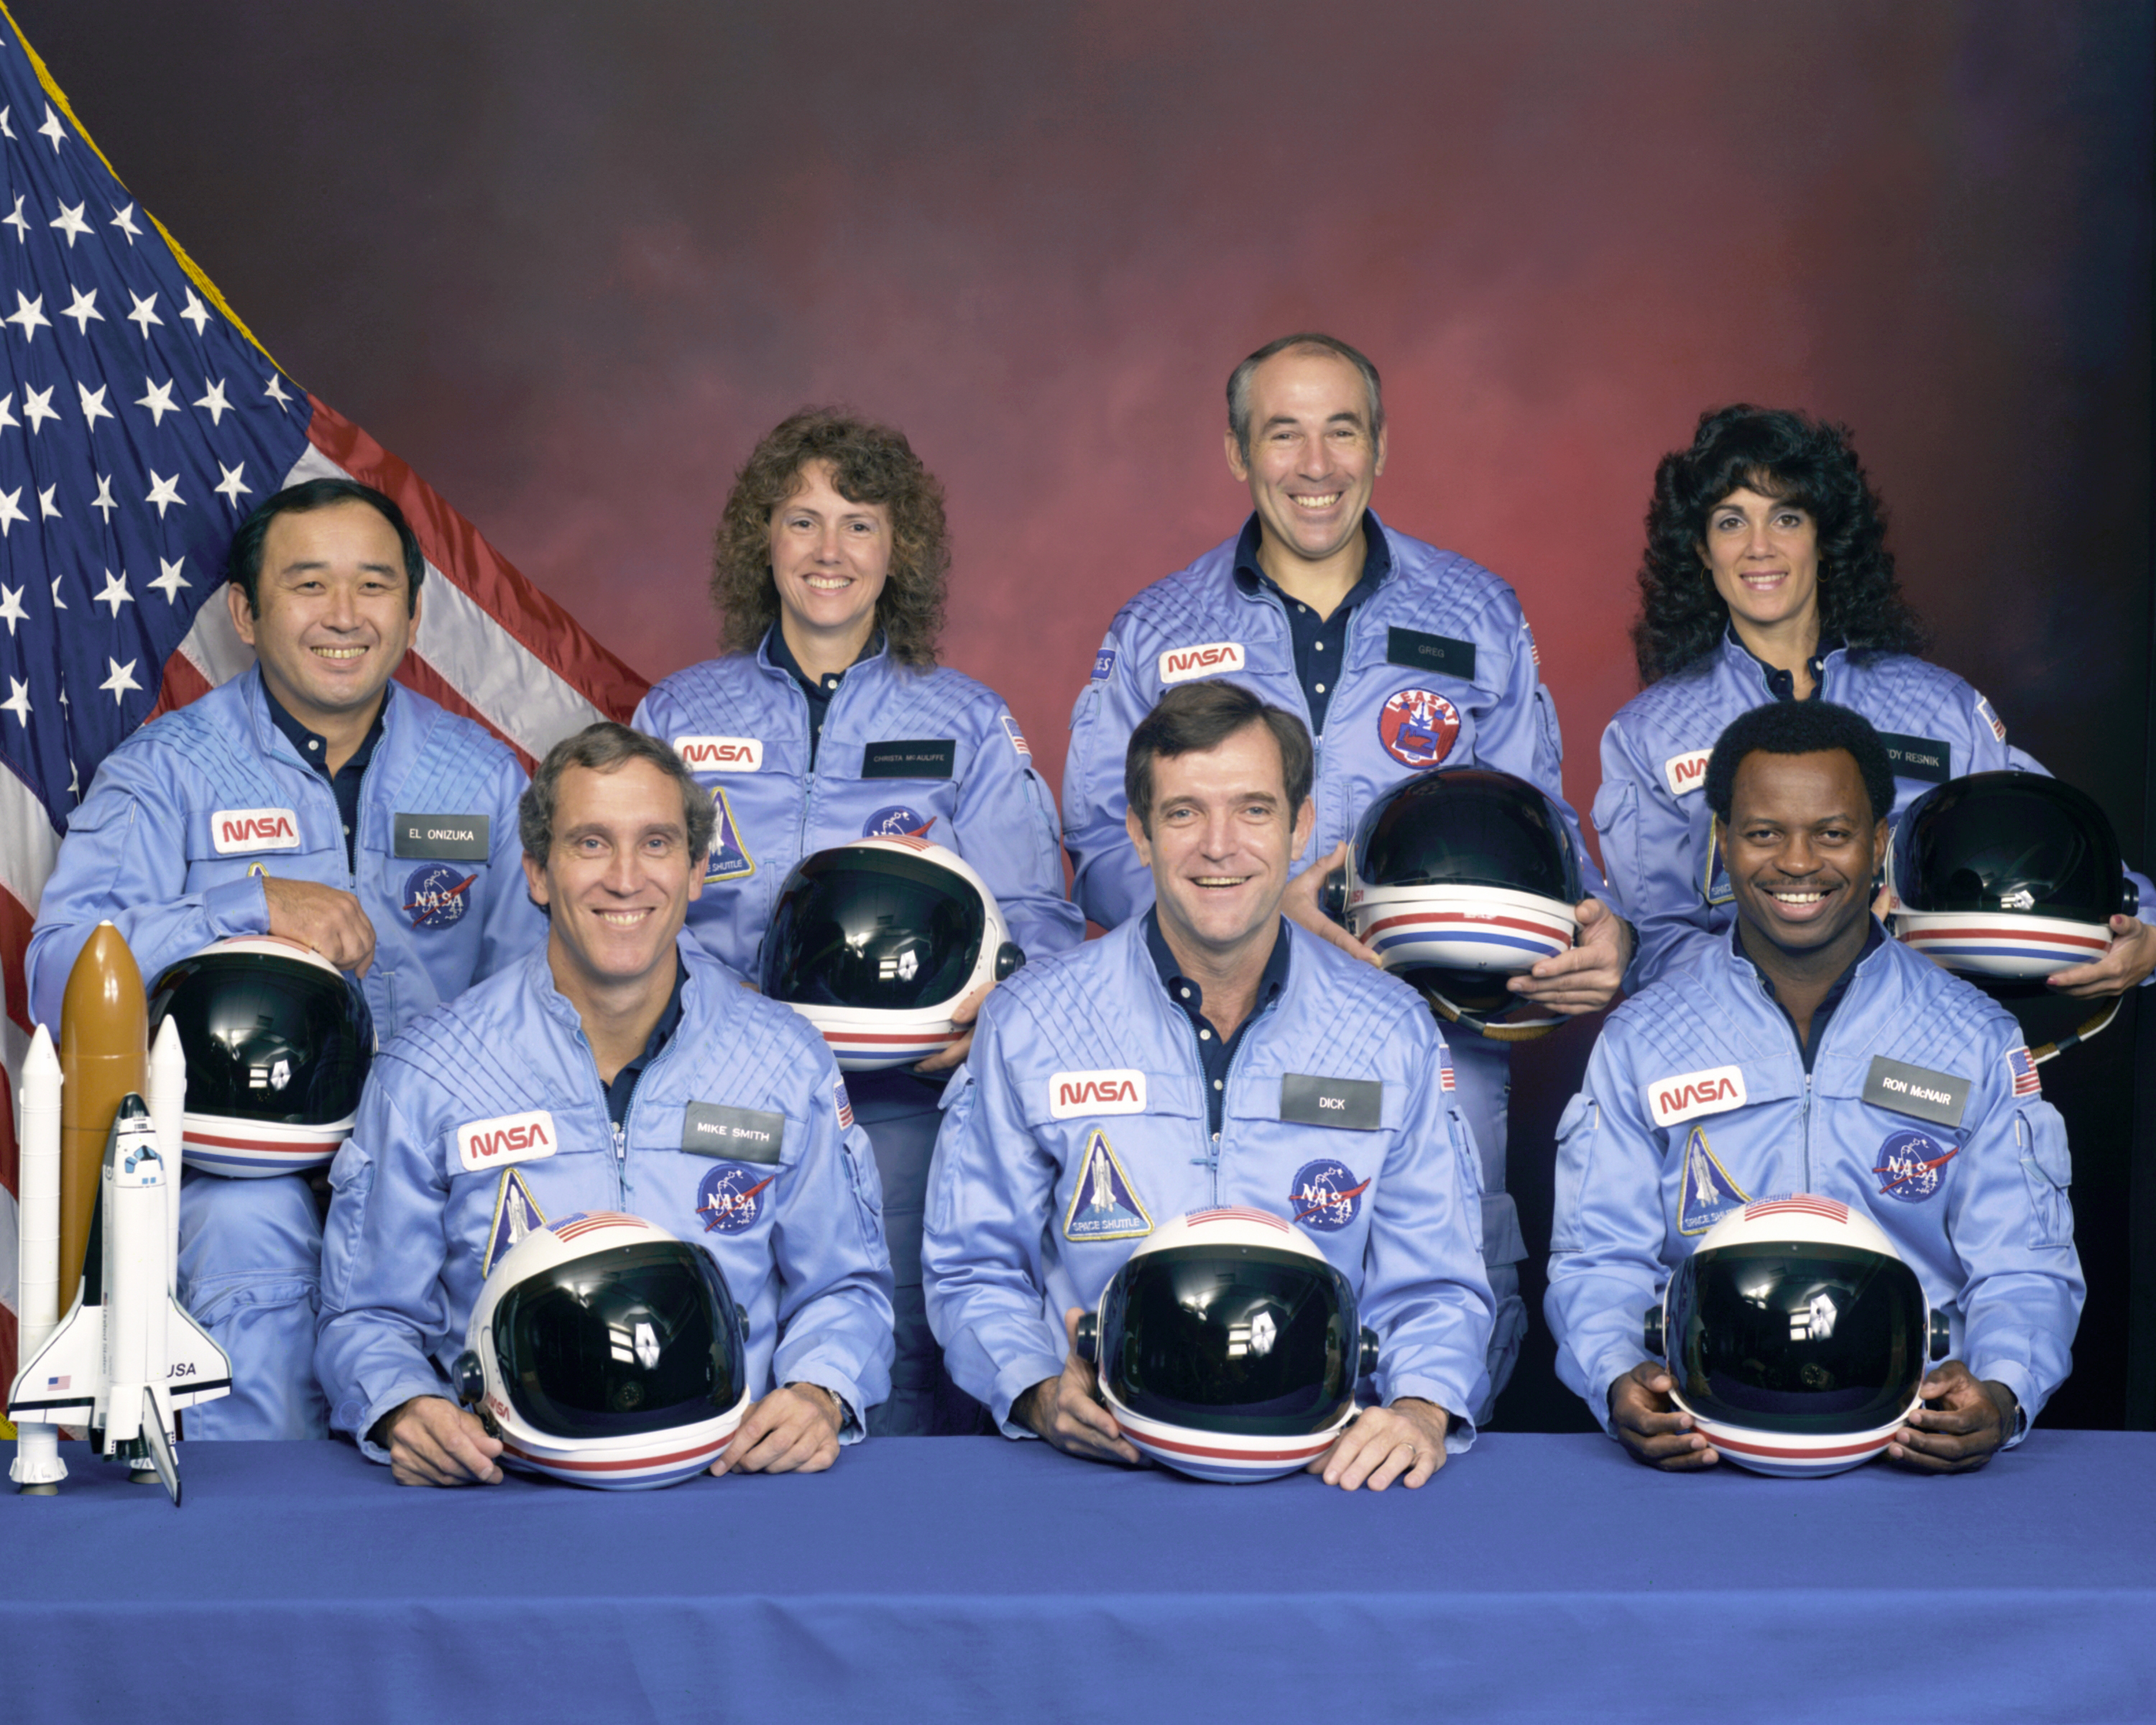 The crew of mission STS-51L: Francis R. Scobee, Michael J. Smith, Judith A. Resnik, Ellison S. Onizuka, Ronald E. McNair, Gregory B. Jarvis and Sharon Christa McAuliffe.  Image from NASA